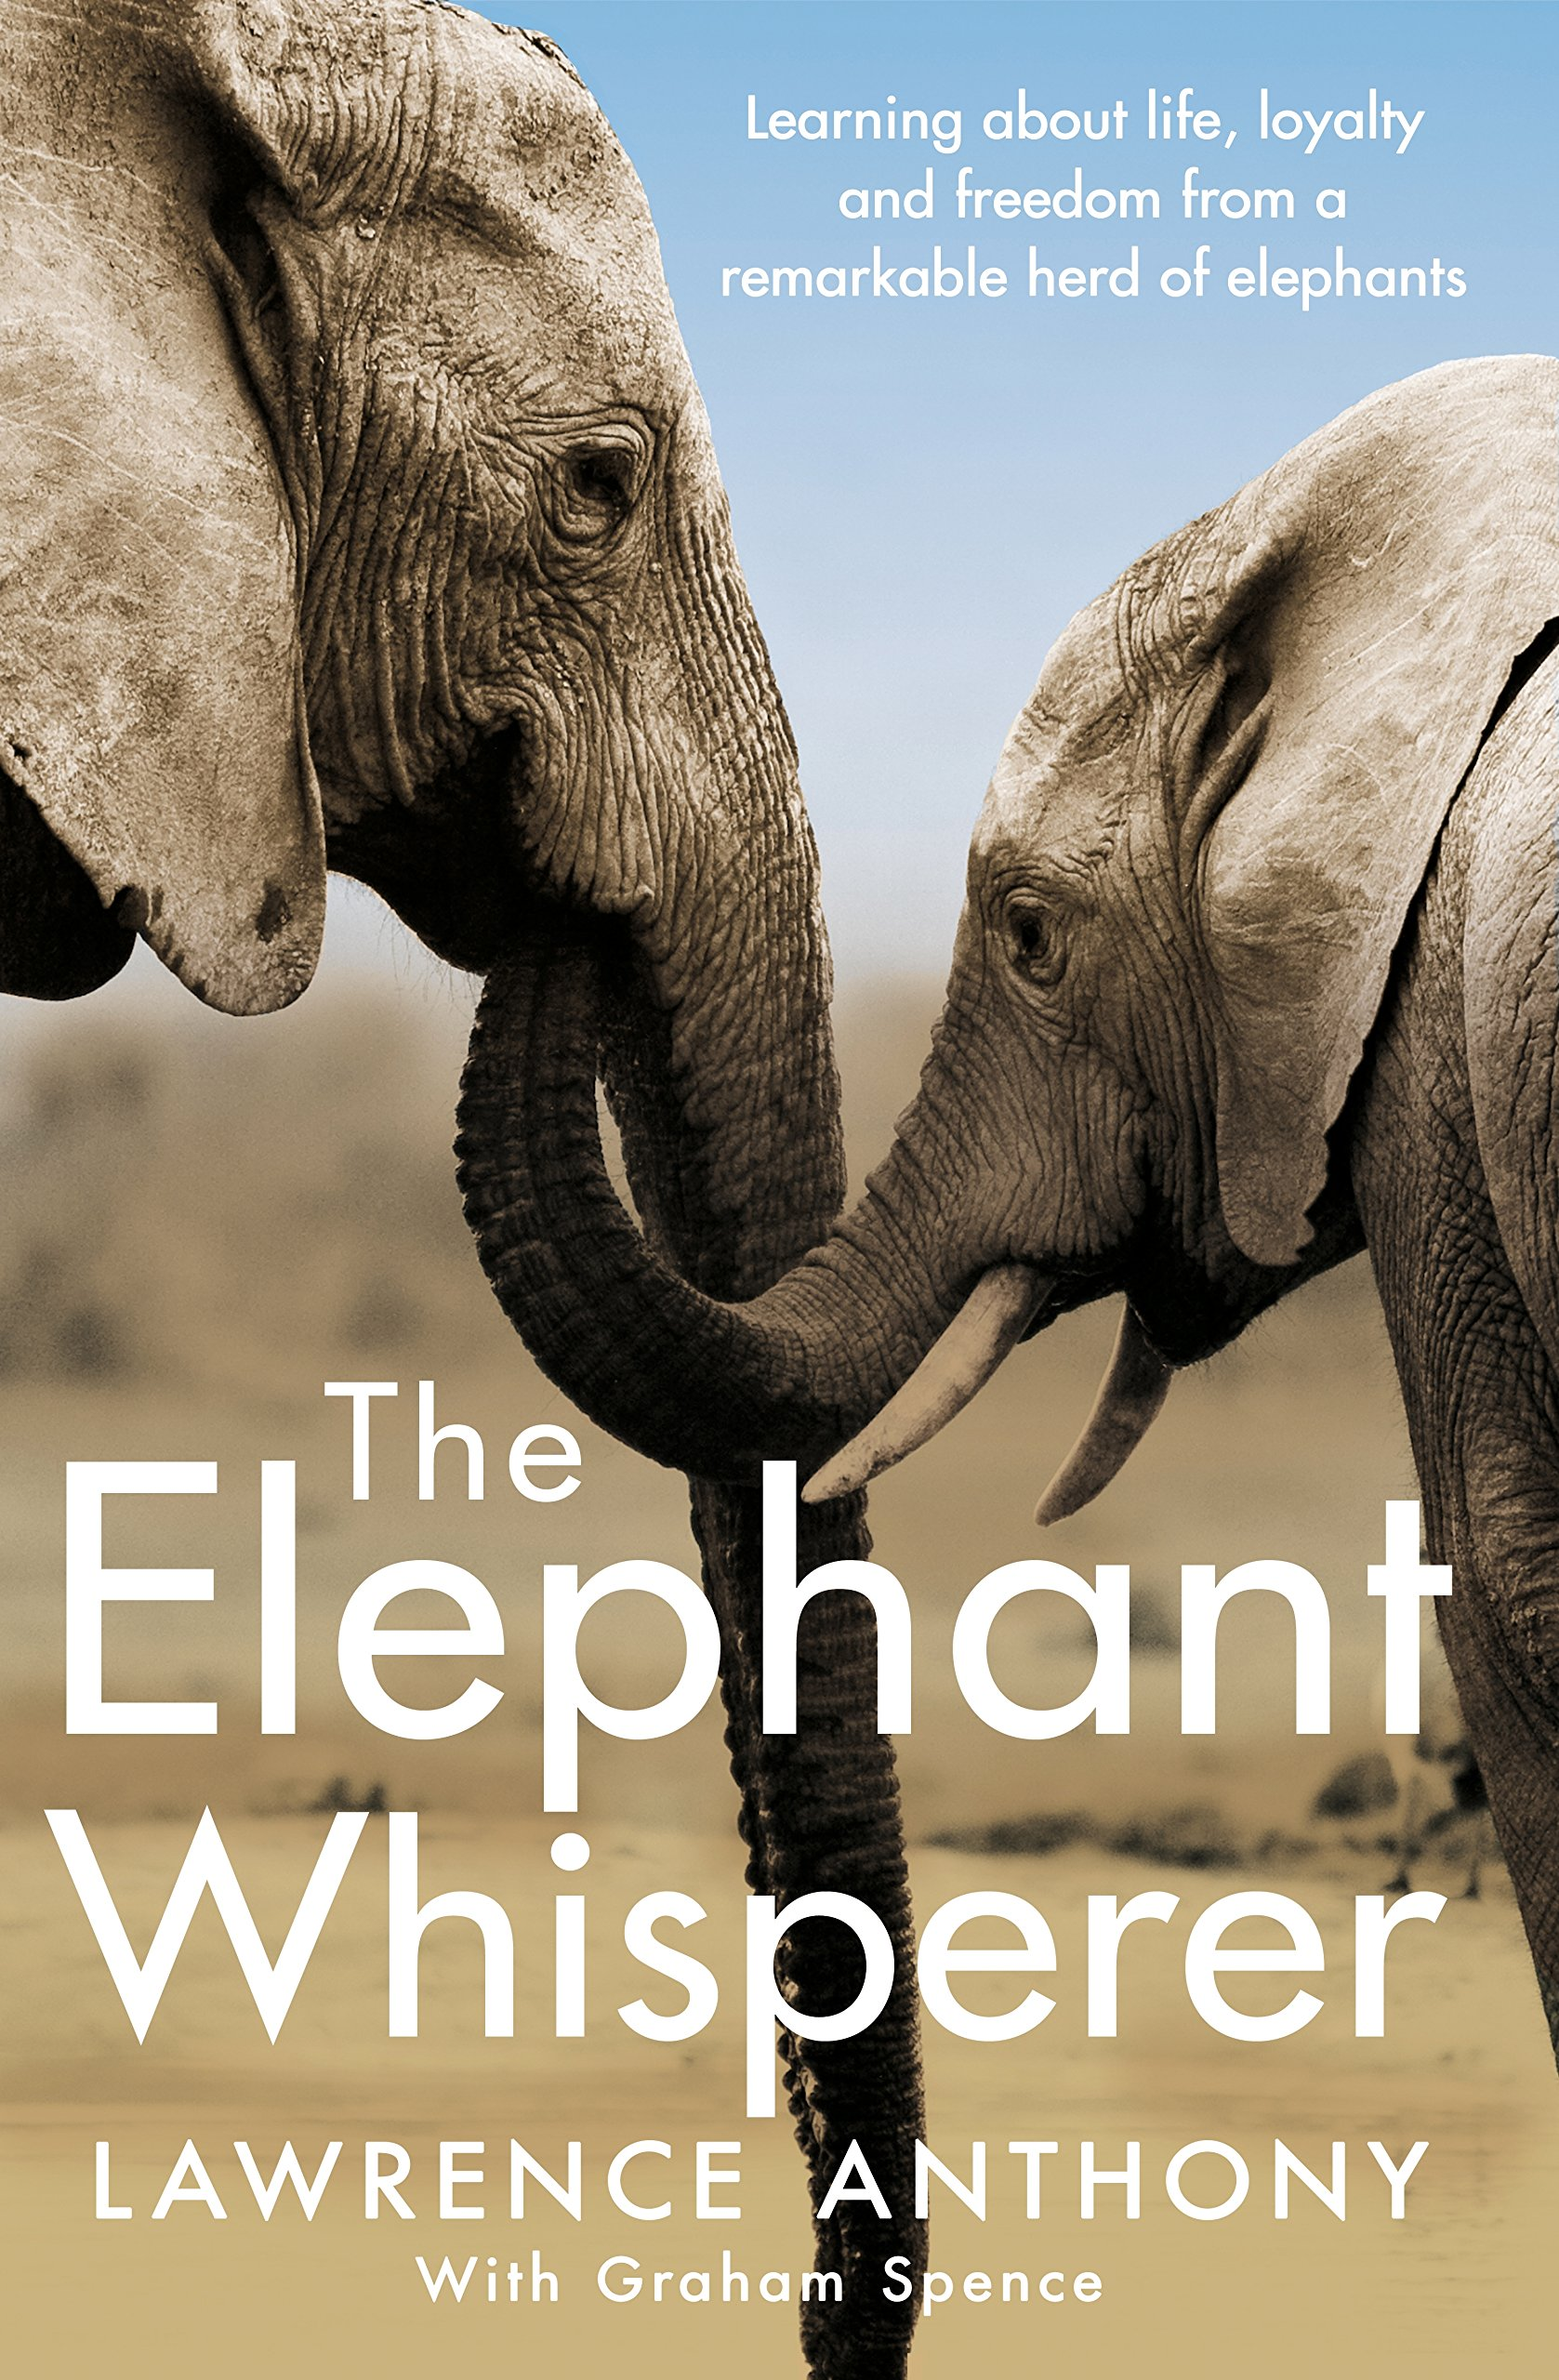 The Elephant Whisperer: Learning About Life, Loyalty and Freedom From a  Remarkable Herd of Elephants: Lawrence Anthony: 9781509838530: Amazon.com:  Books